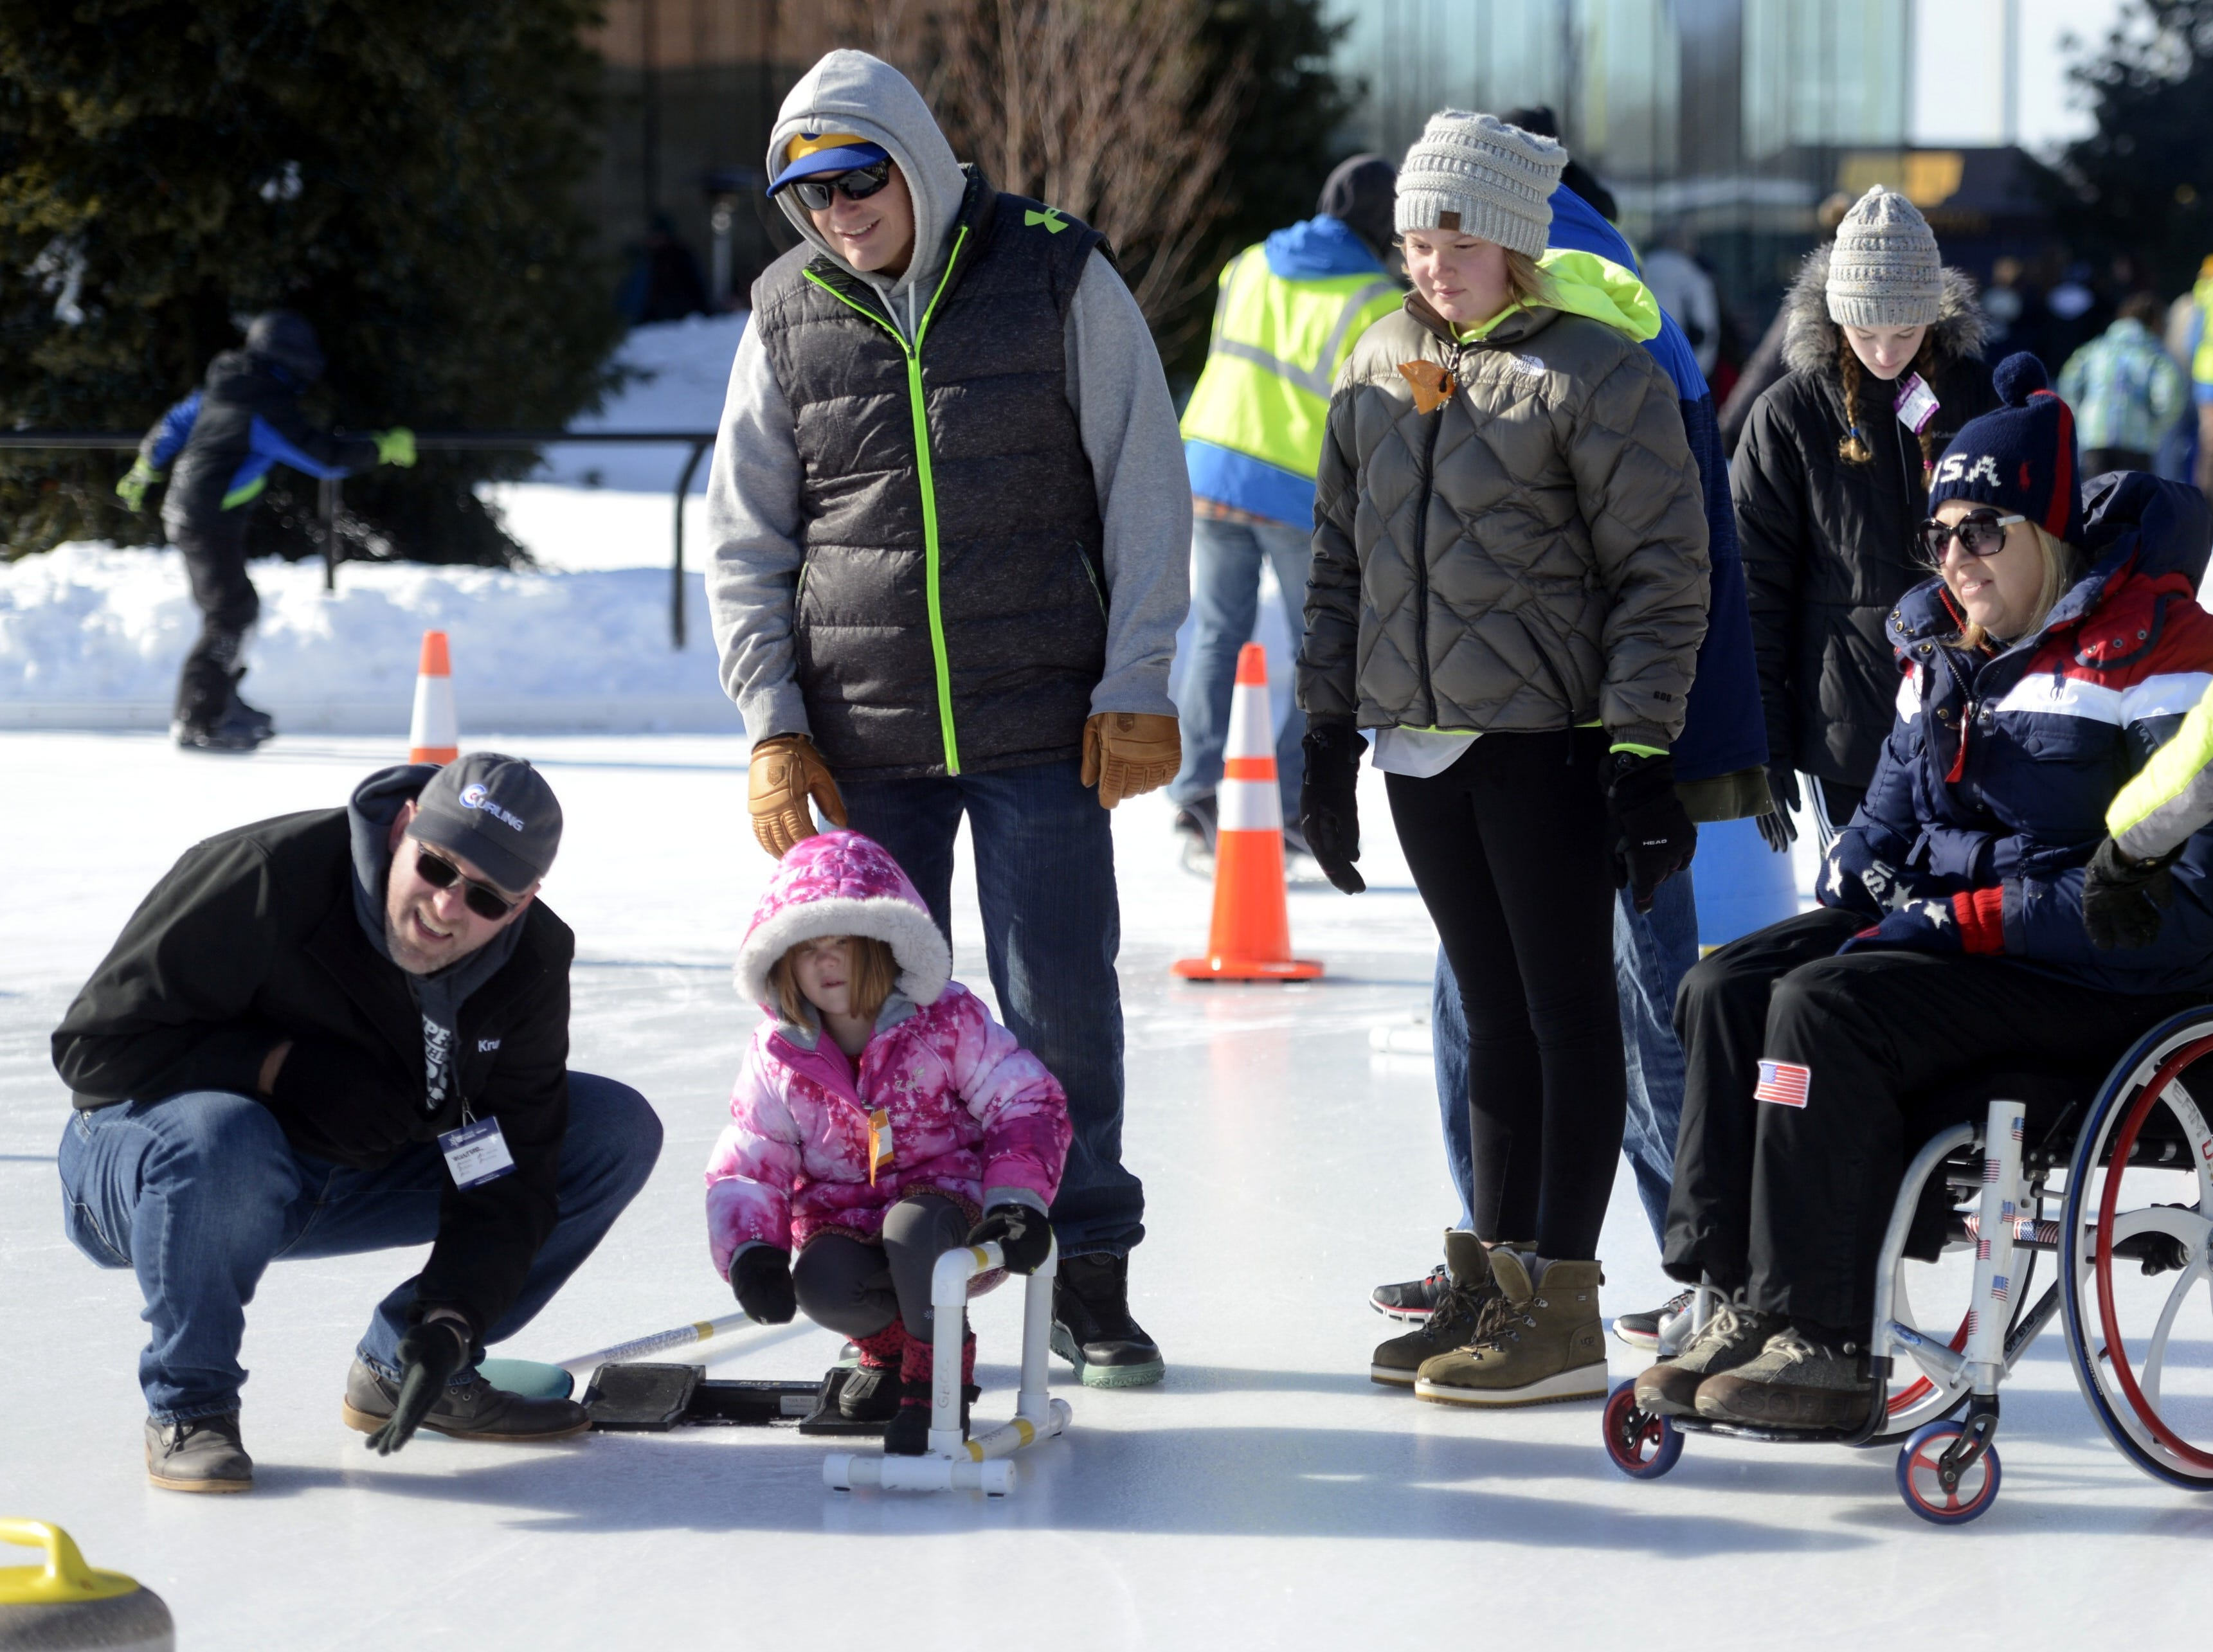 Kendra Lins, 4, of Green Bay of Green Bay tries curling during the Titletown Winter Games on Saturday, Feb. 16, 2019.